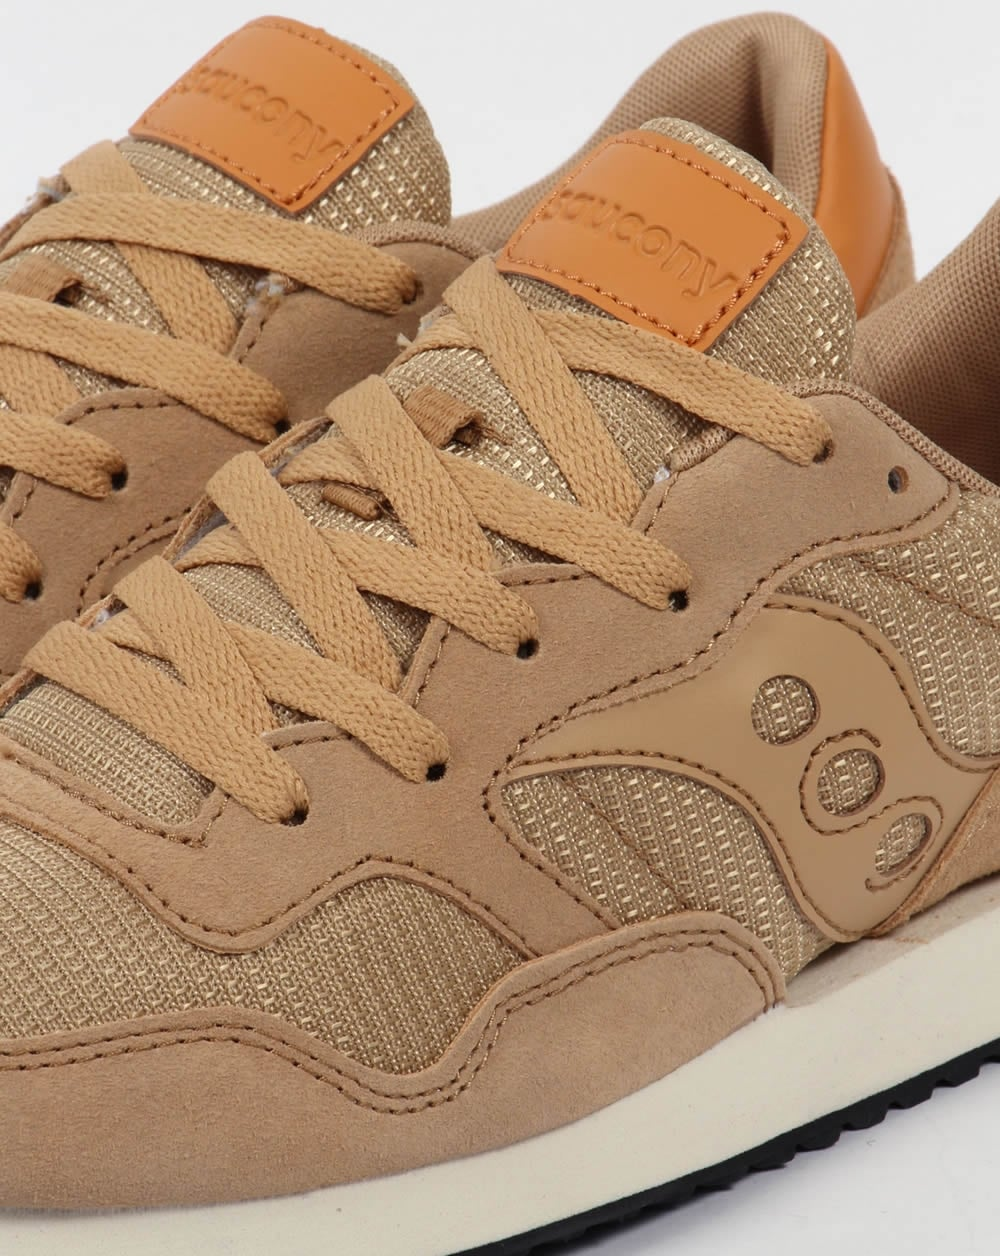 runners shoes Trainers Saucony Tan Dxn mens waRTXUx